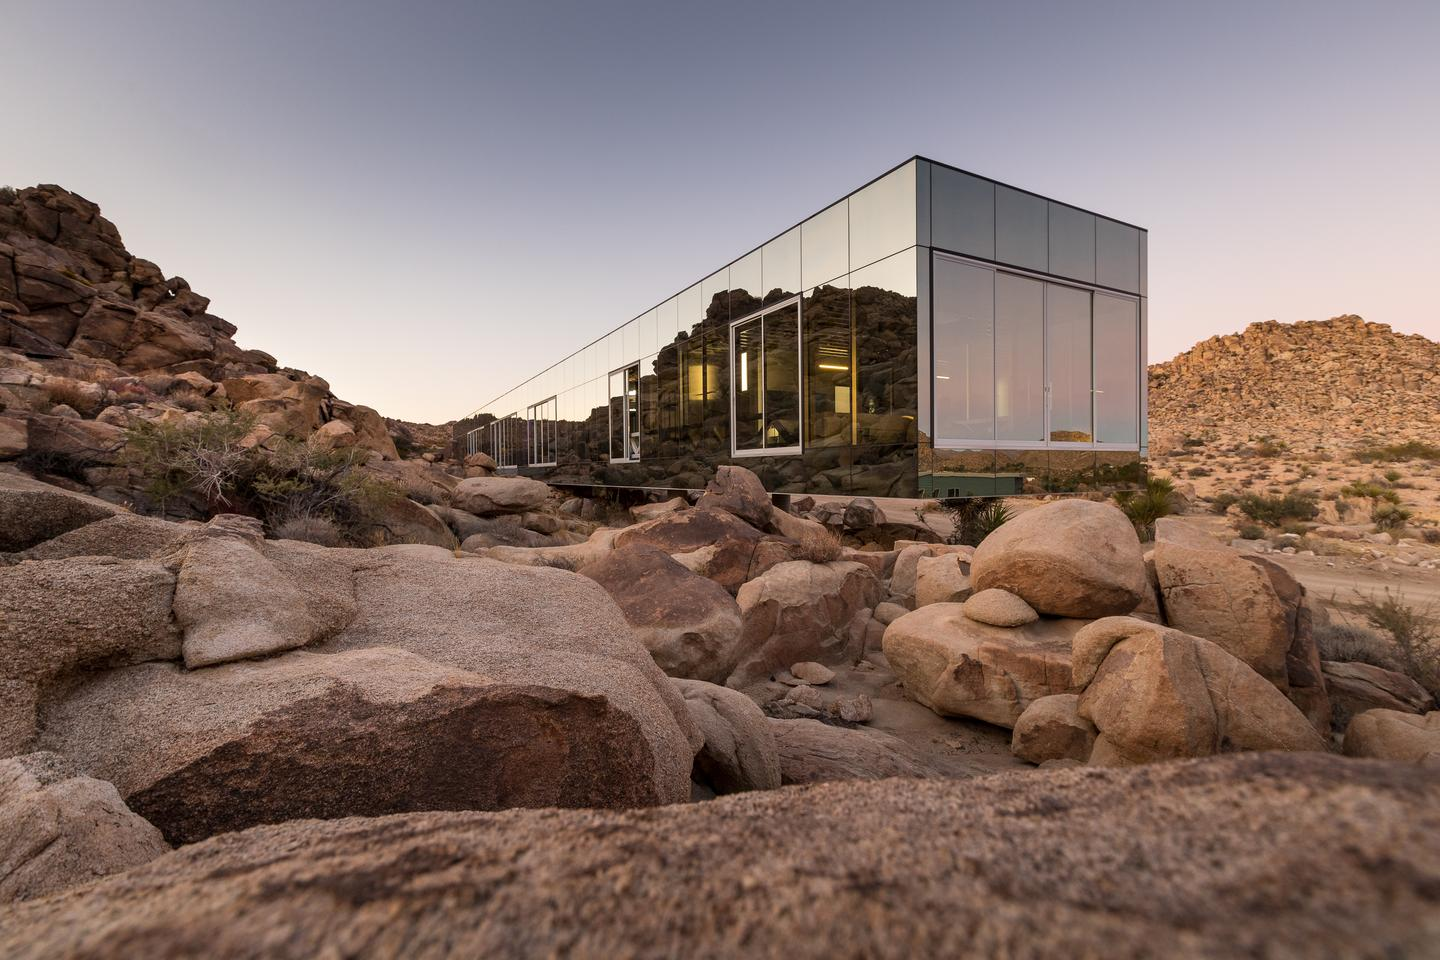 The Invisible House cantilevers over some rocks that were already on the site